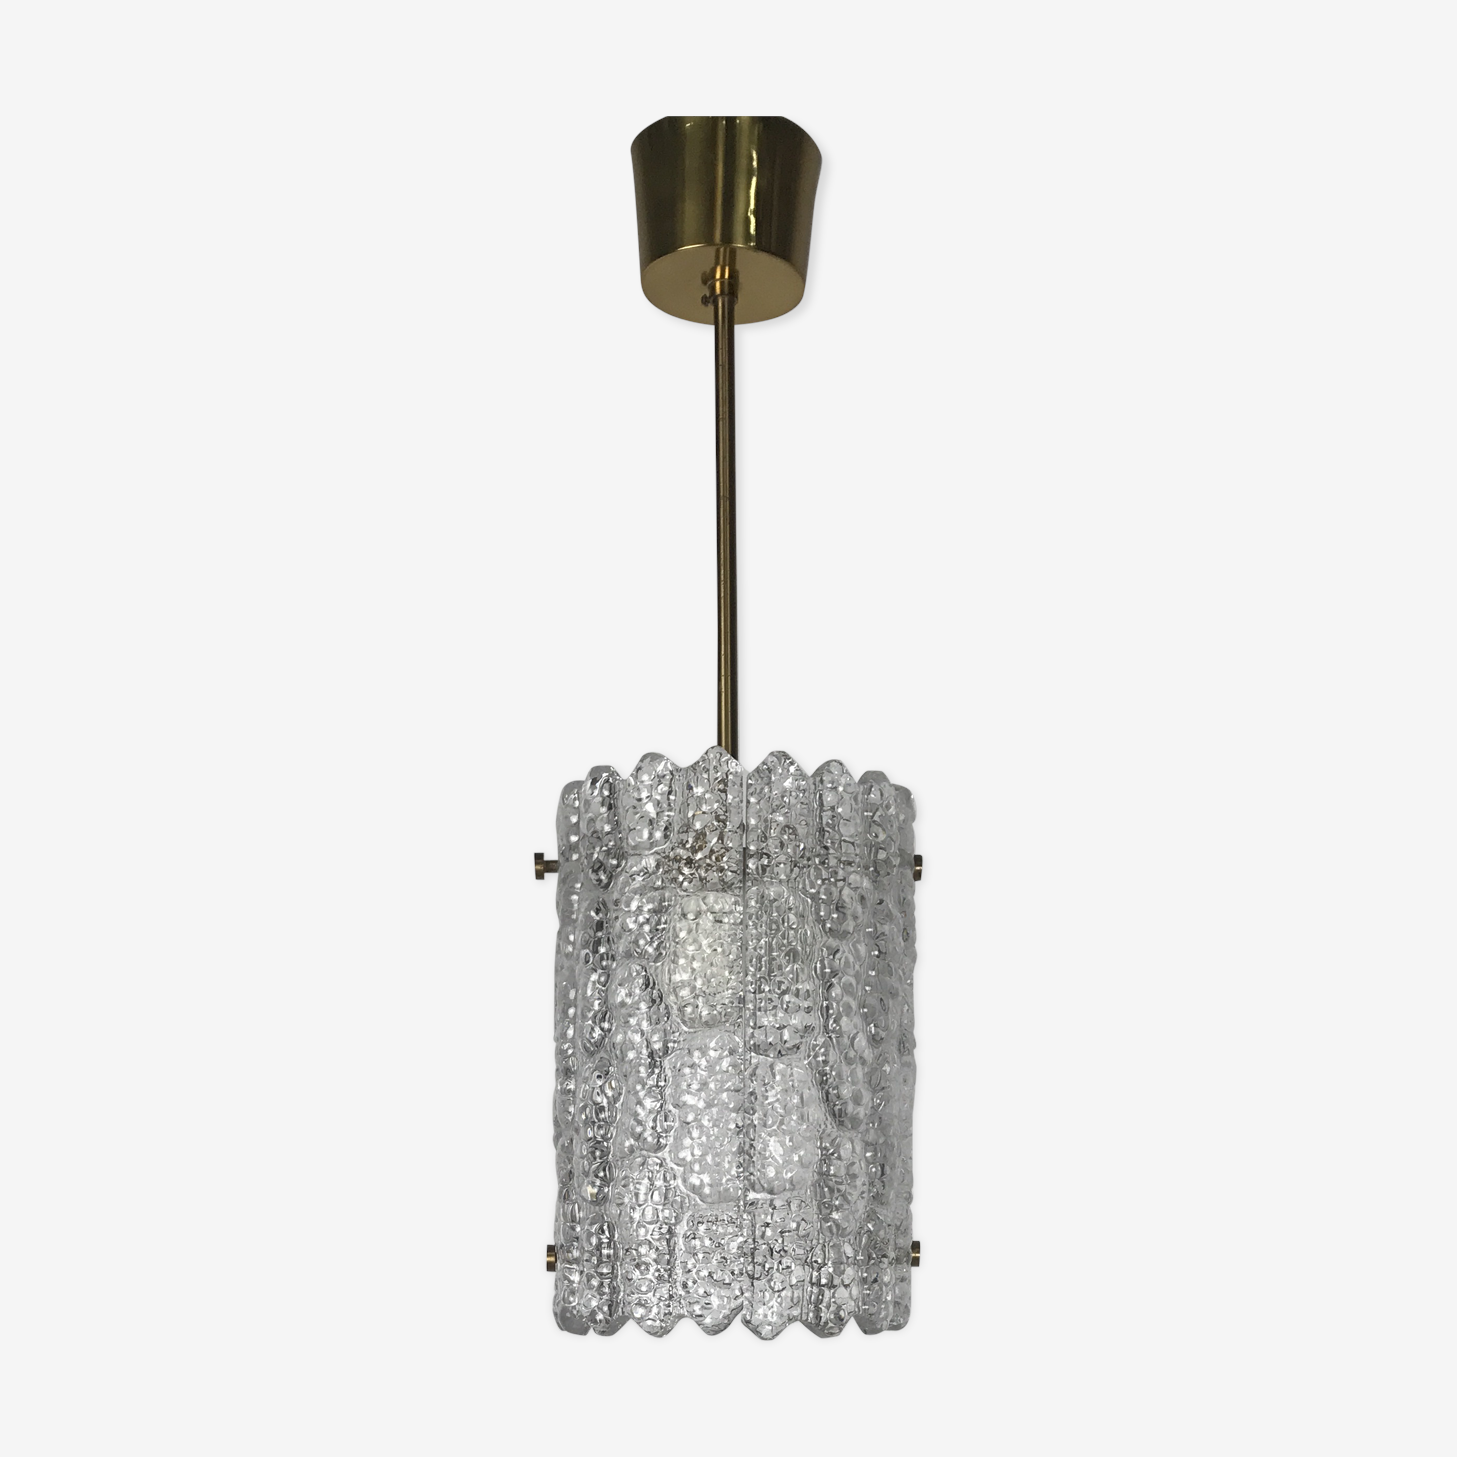 Crystal hanging lamp, Carl Fagerlund For Orefors, Sweden 70s